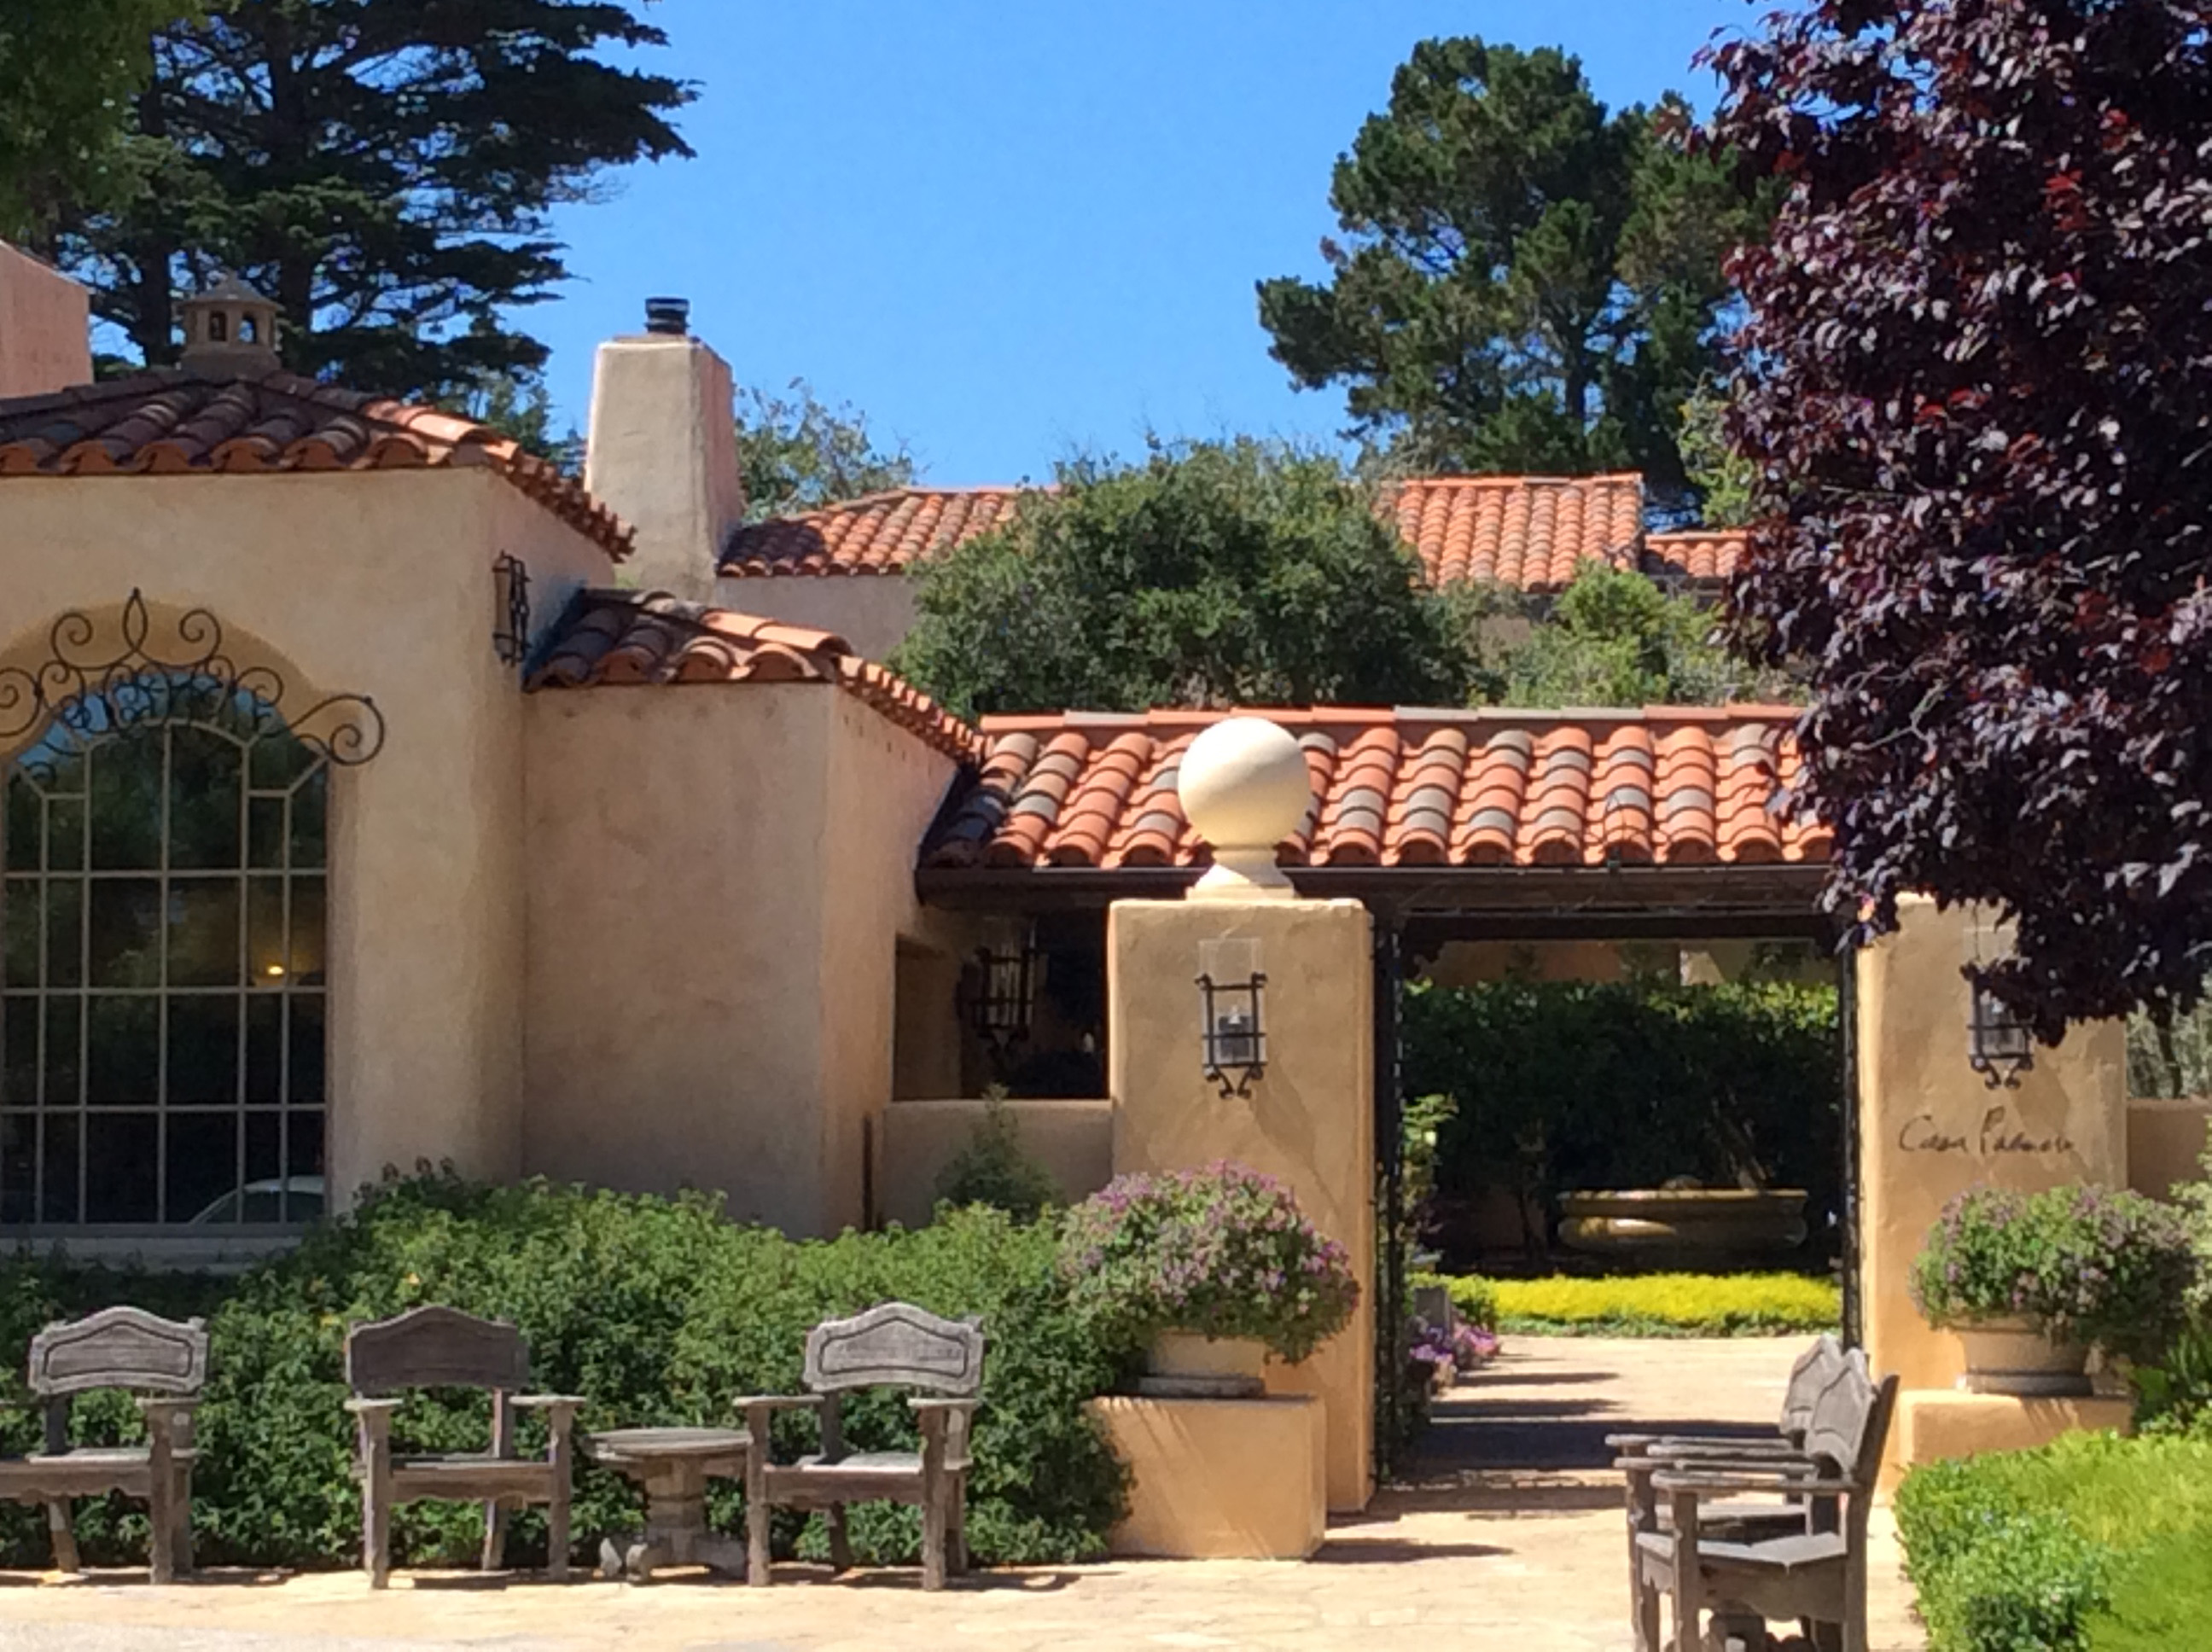 Casa Palmero Boutique Spanish Style Hotel at Pebble Beach Resorts, Ca